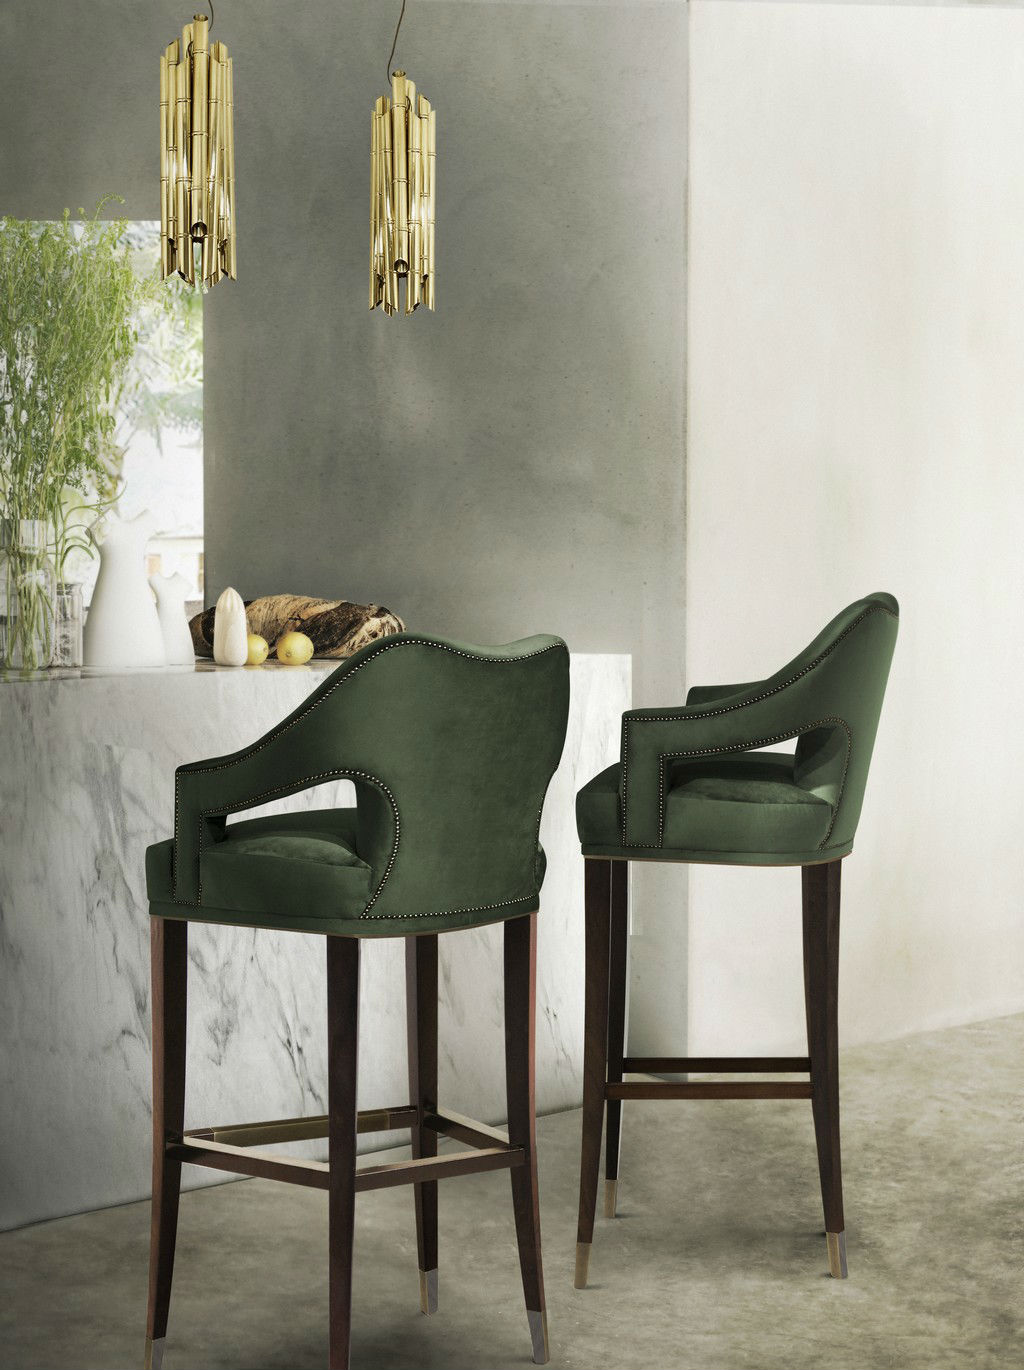 Upholstered bar stools with backs and wood legs